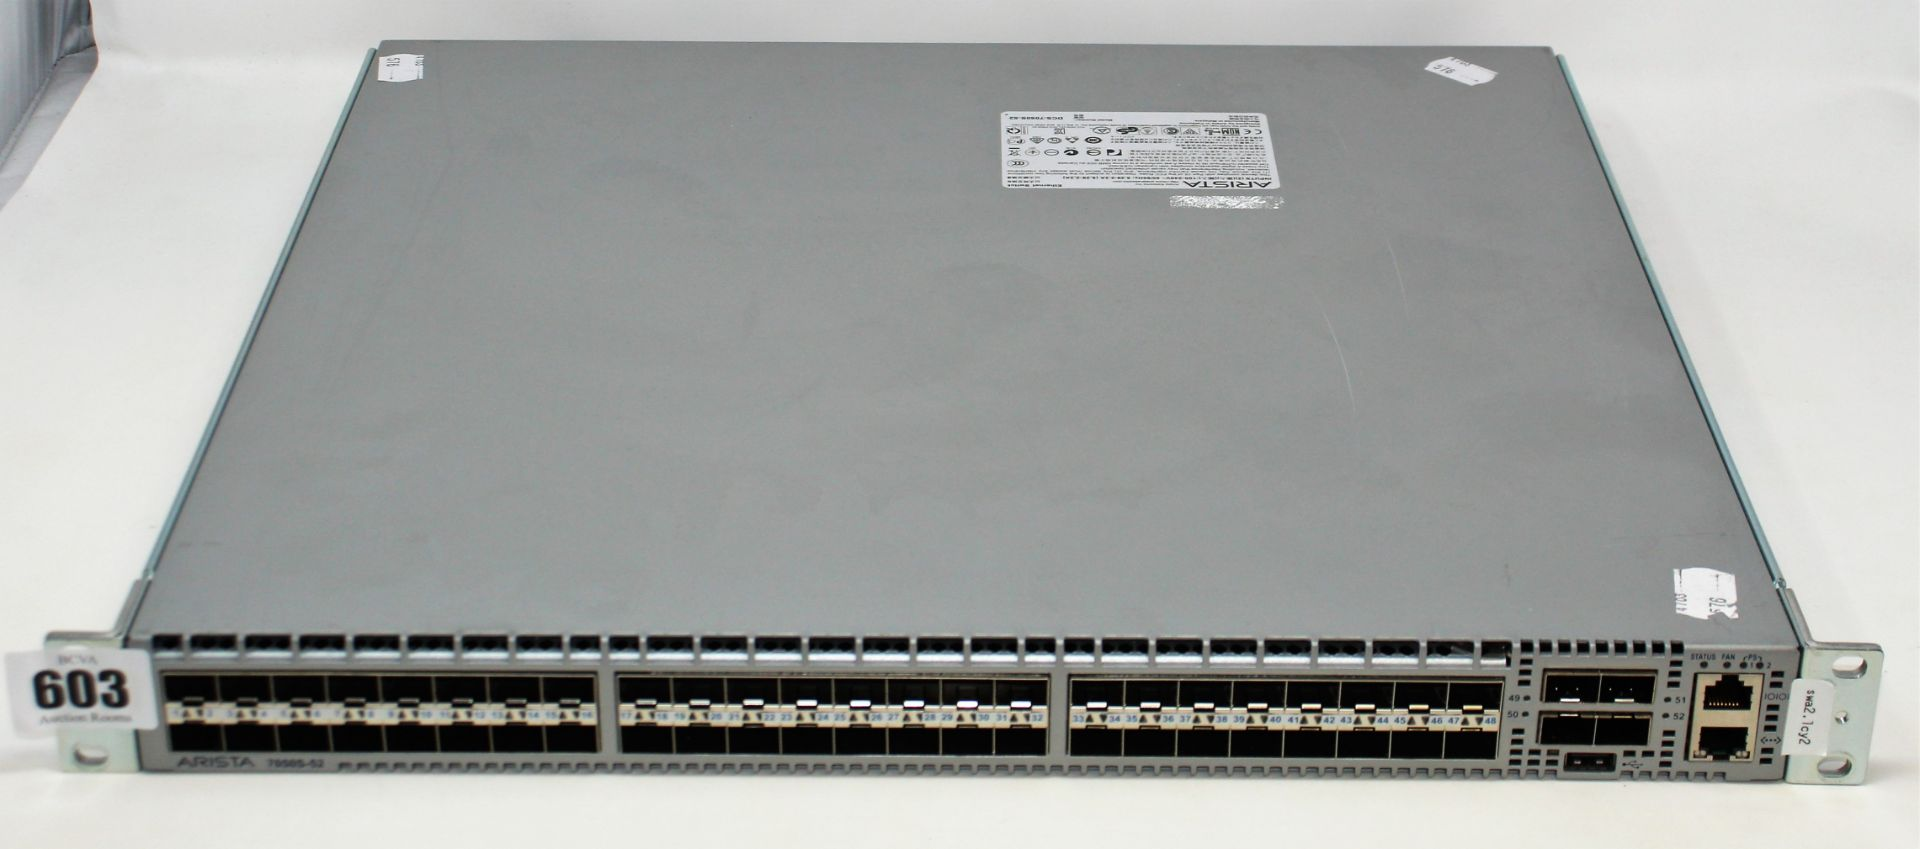 A pre-owned Arista DCS-7050S-52 52 Port Ethernet Switch (Untested, sold as seen).